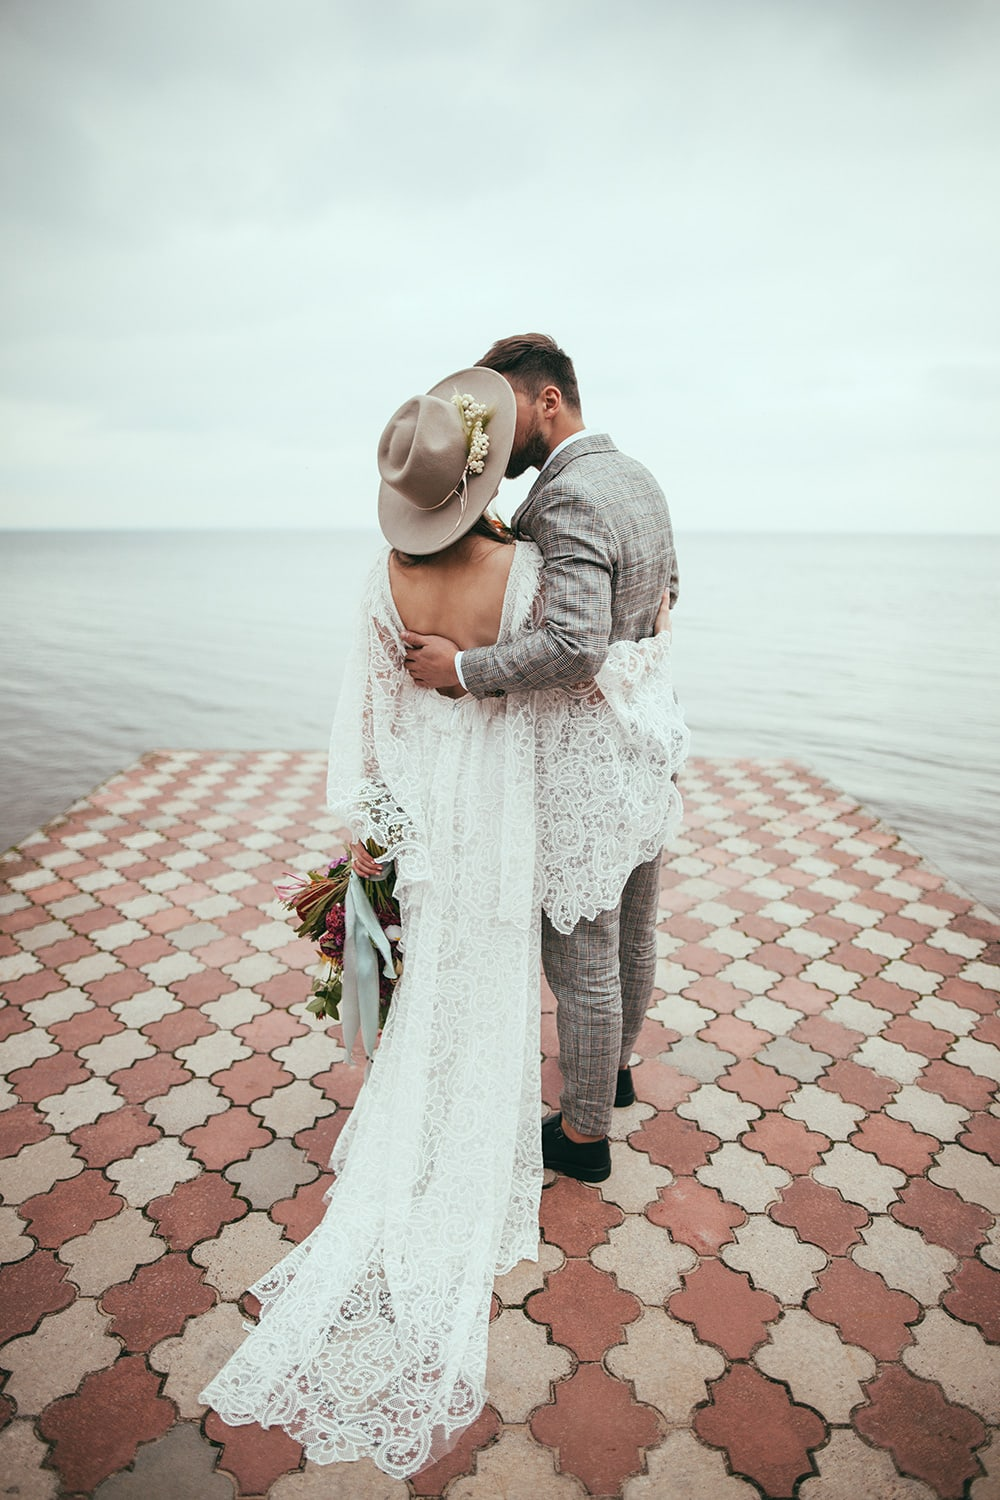 The Best Wedding Advice from Newlyweds